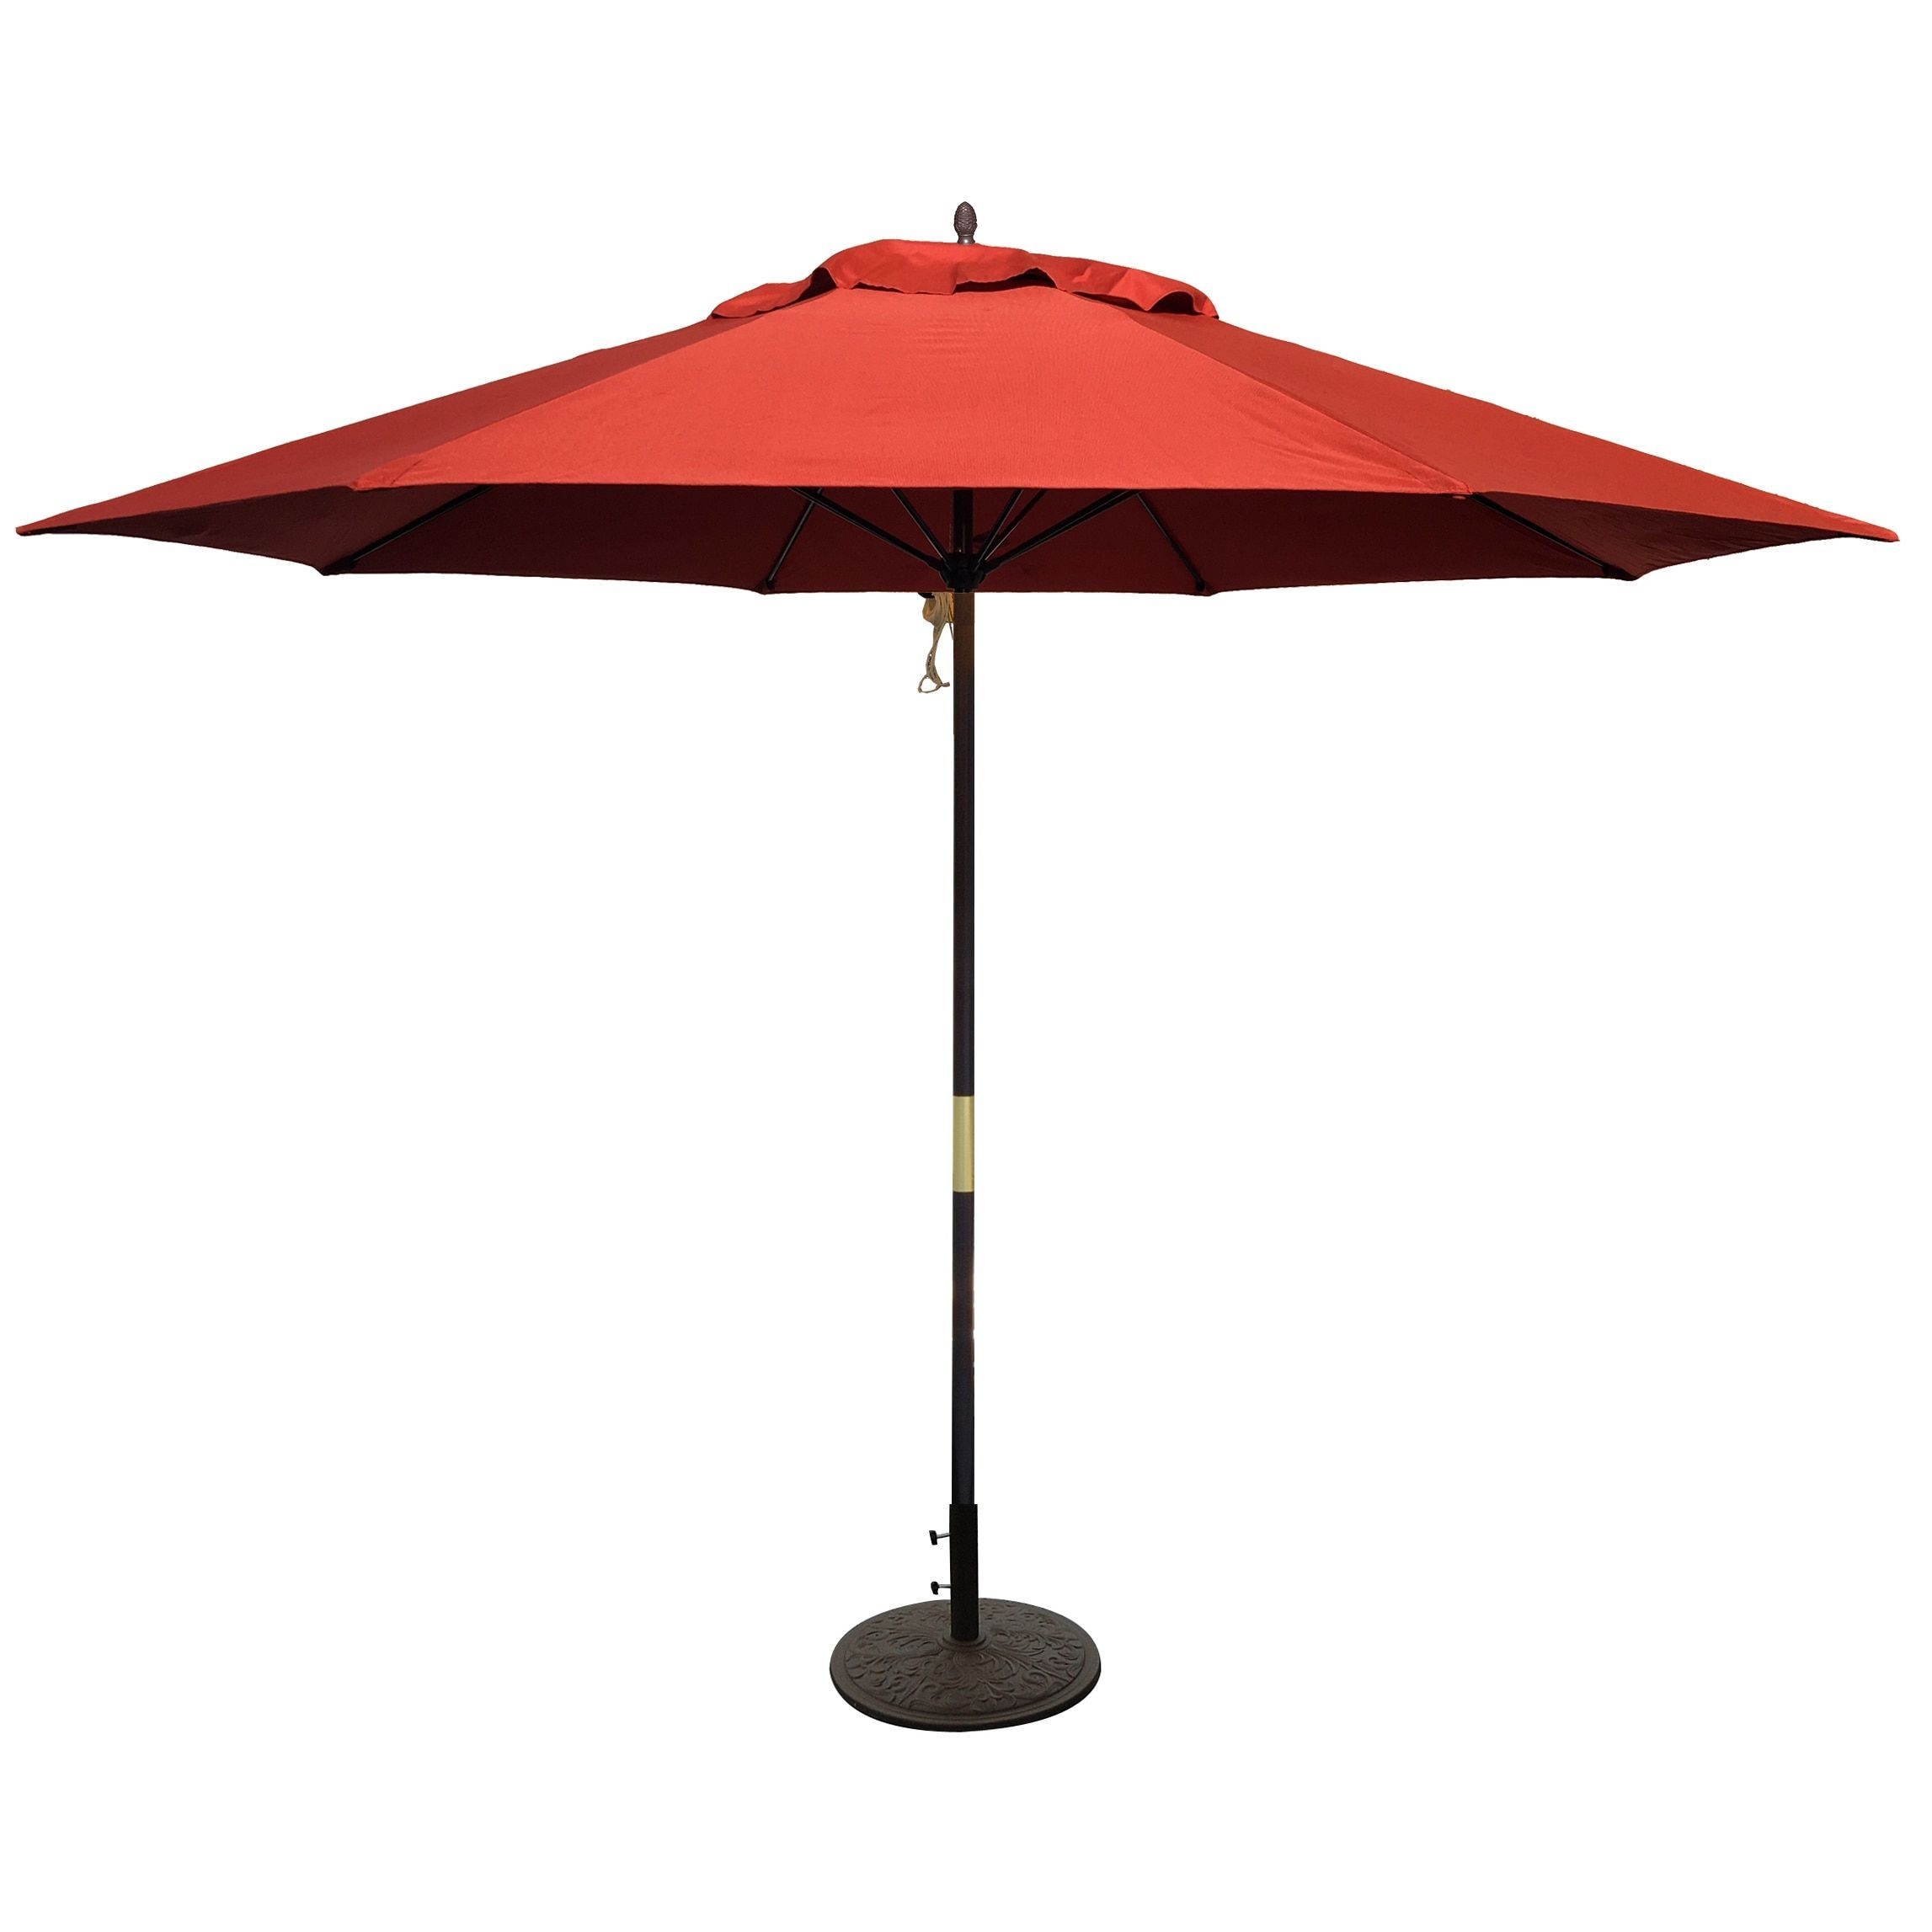 Tropishade 11 Ft Dark Wood Market Umbrella With Brick Red Olefin Cover 11 Dark Wood Market Umbrella Patio Umbrella Offset Patio Umbrella Outdoor Umbrella Rectangular Patio Umbrella